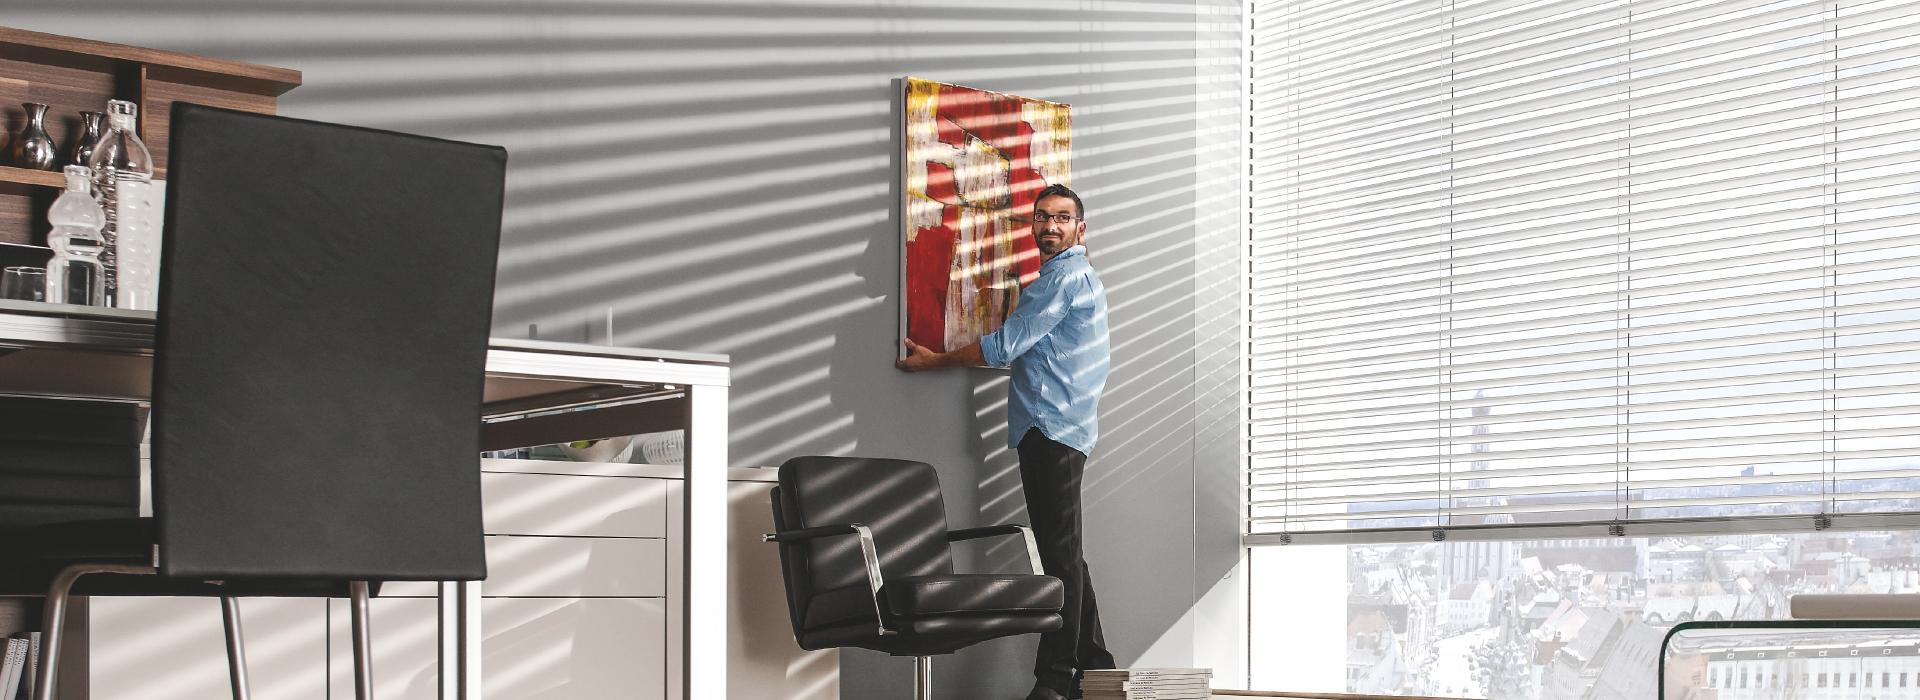 Man hangs up painting in office, external venetian blinds are tilted